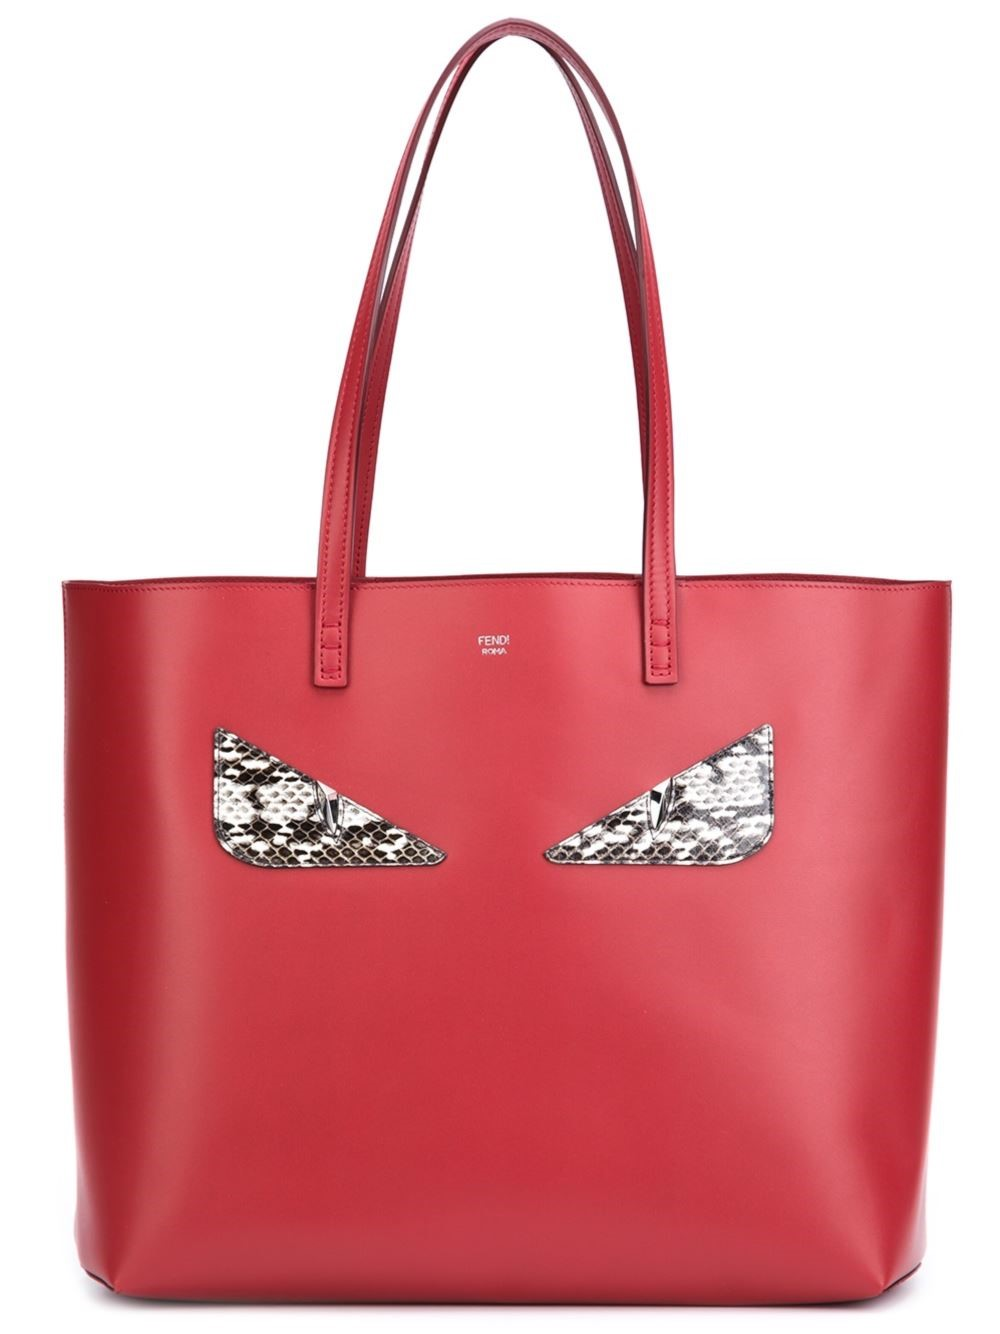 Don't try and pretend that you don't want a bag to match those shoes! Fendi Bug Tote, $1,850, husonline.com (Image: Courtesy Hu's Shoes)